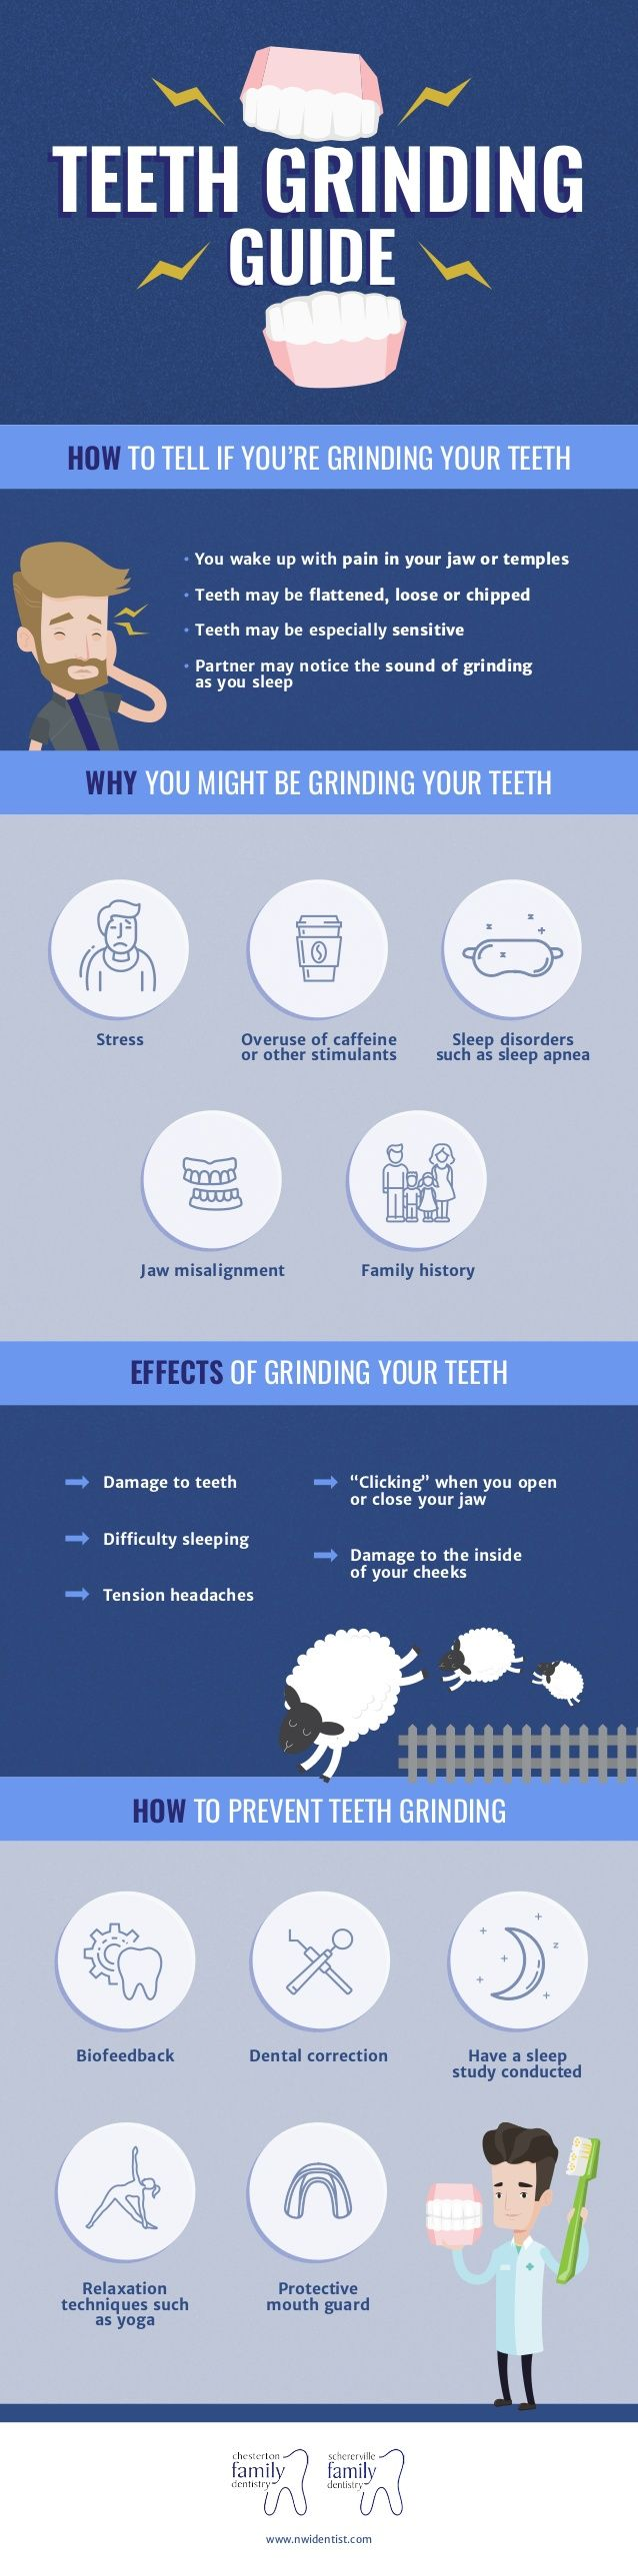 dental assistant resume skills%0A Teeth Grinding Guide